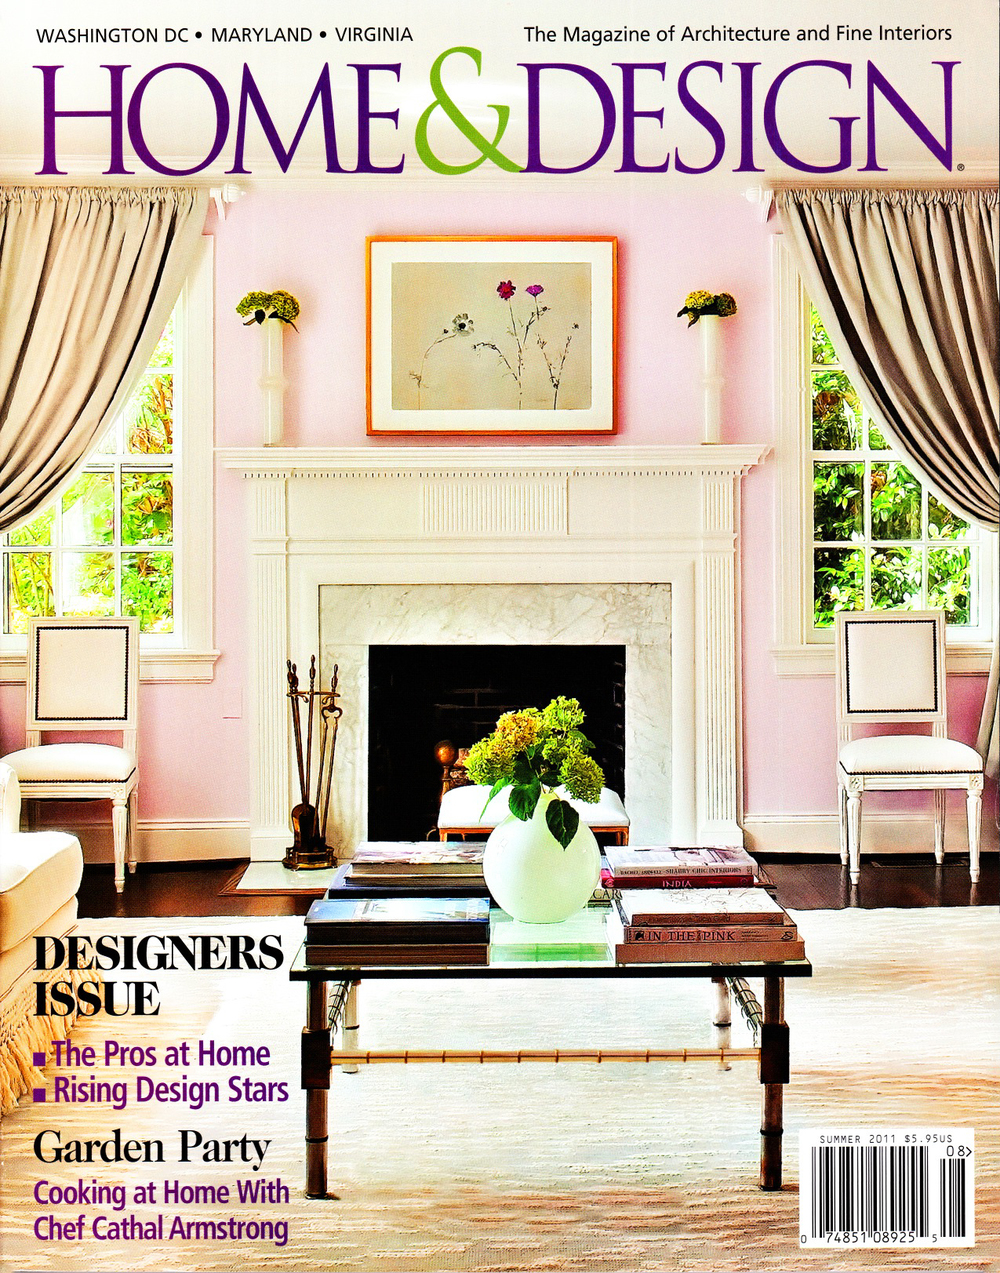 Home and Design Summer 2011.jpg